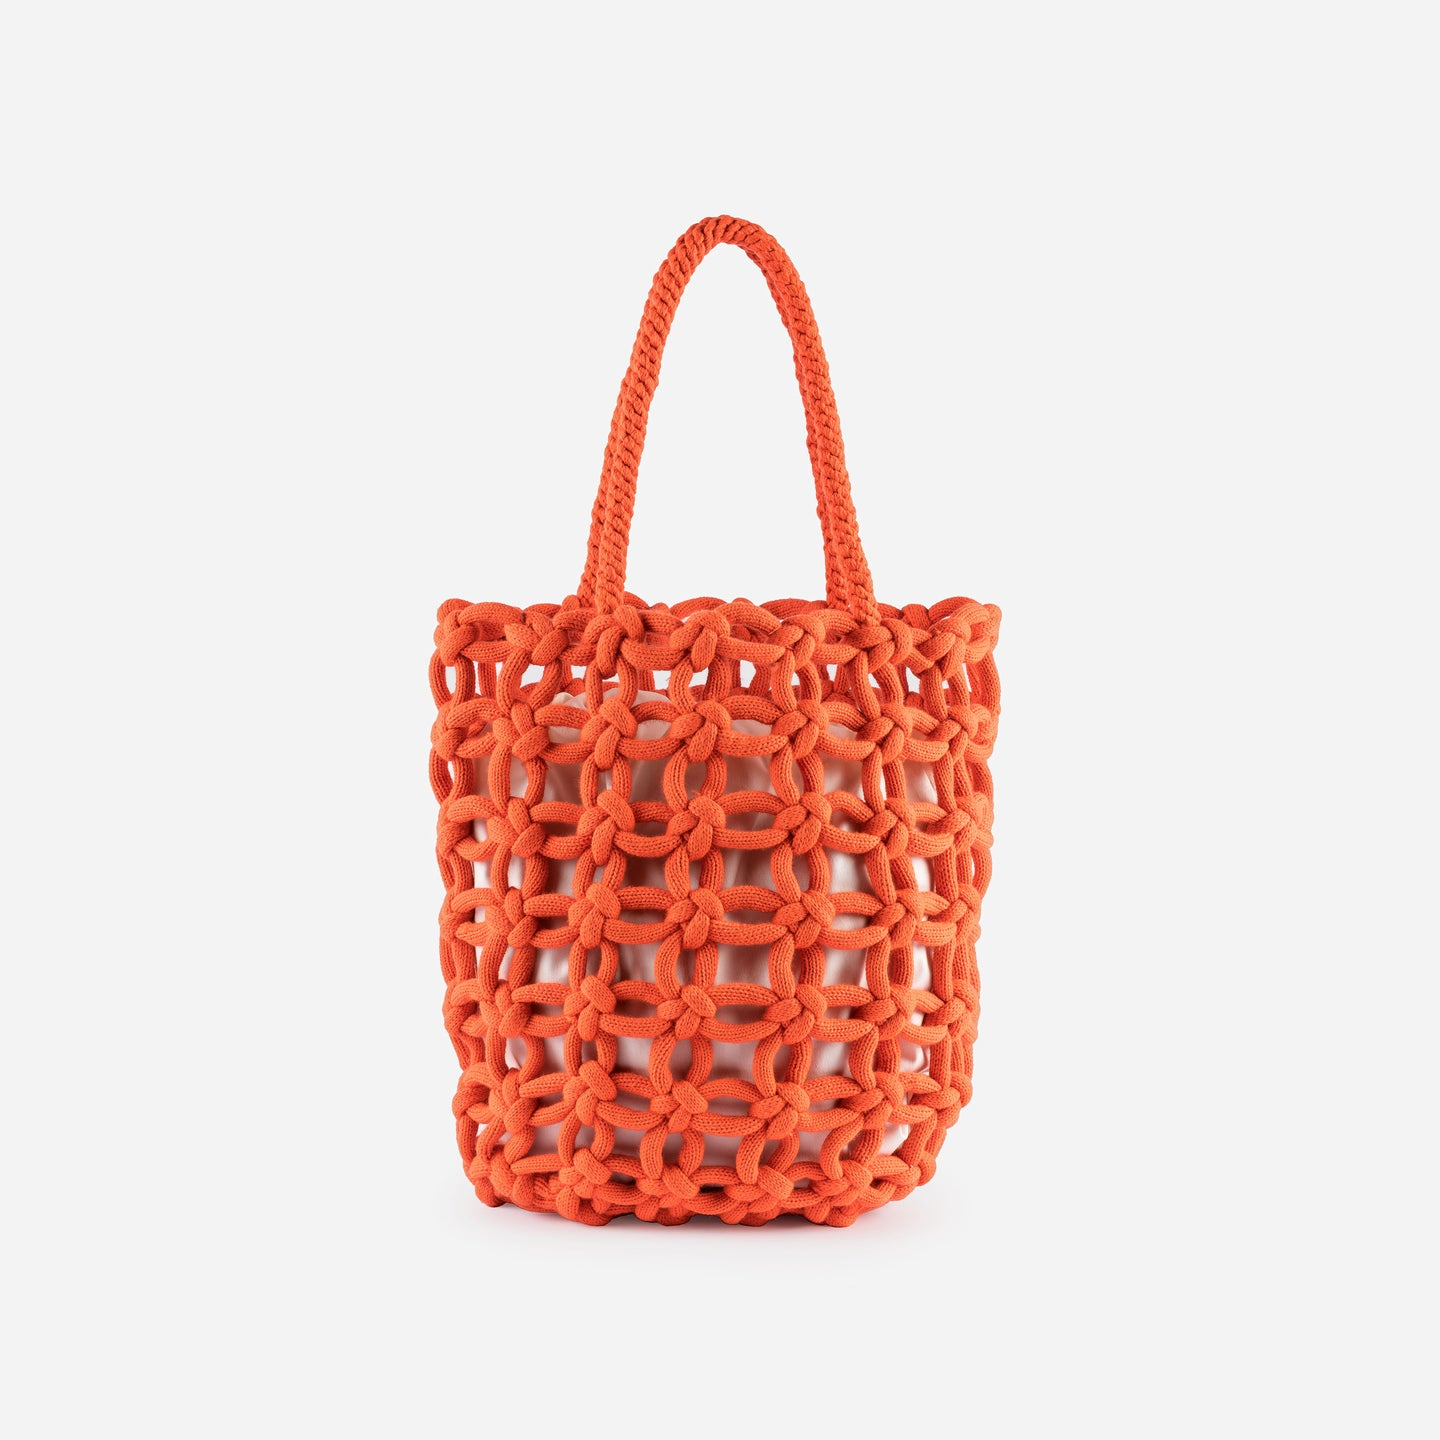 Knotted Shopper Tote Repurposed Macrame Braided